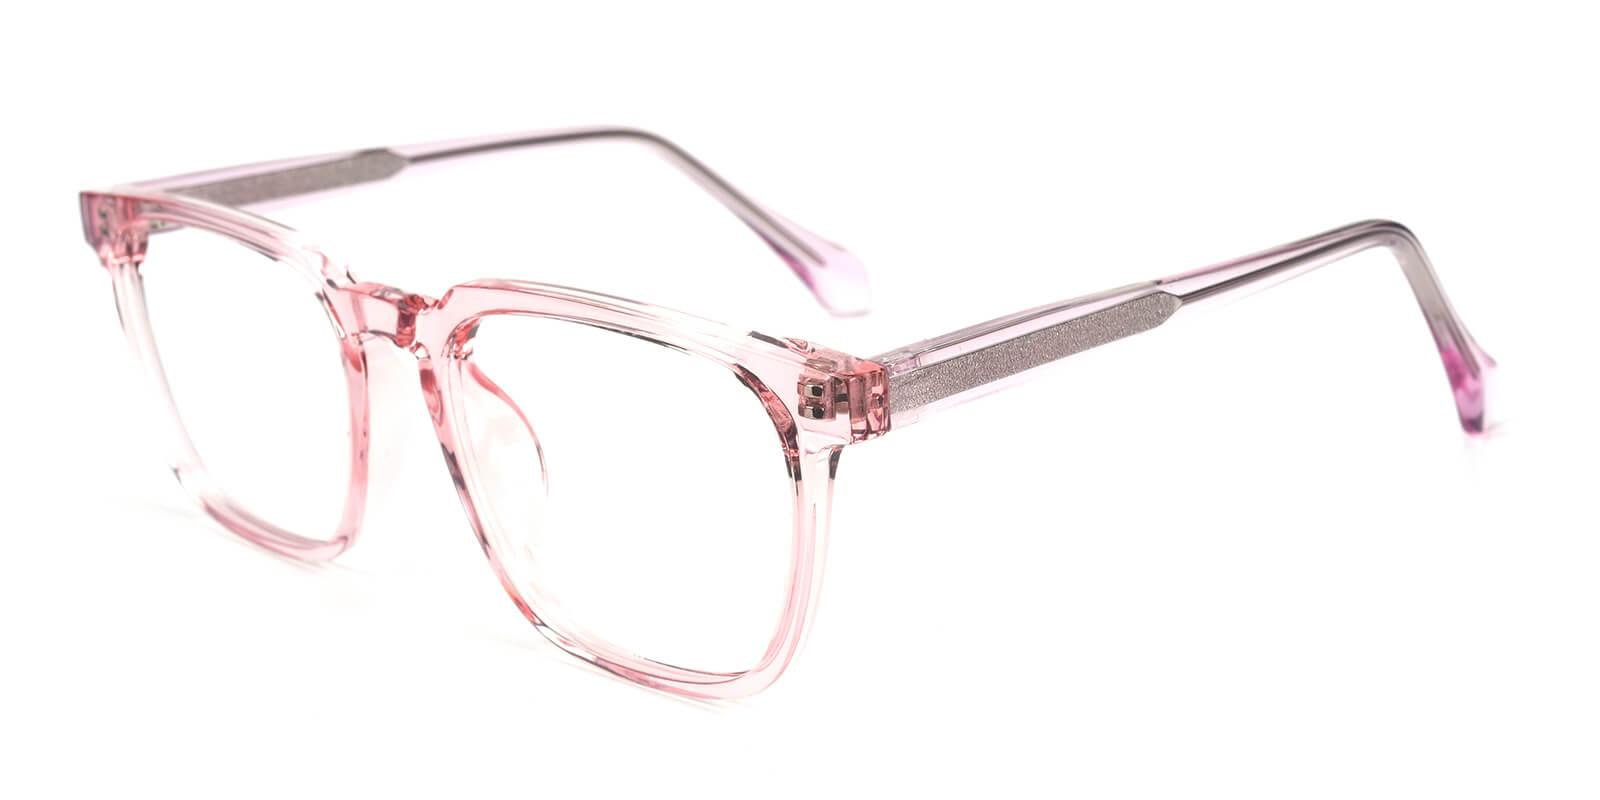 Gekay-Pink-Square-Acetate-Eyeglasses-detail